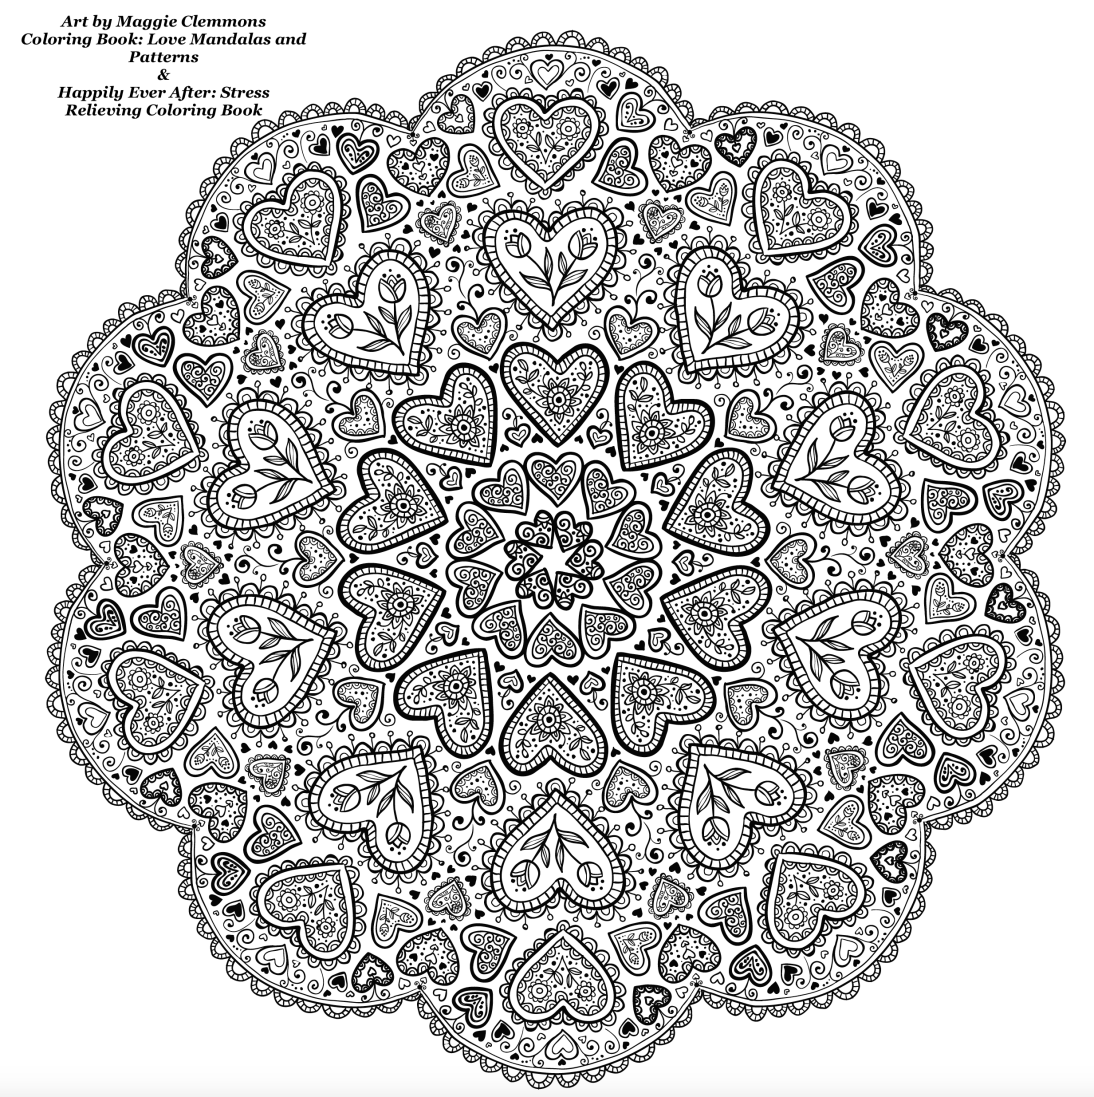 Free coloring pages from Adult Coloring Worldwide Art by Maggie